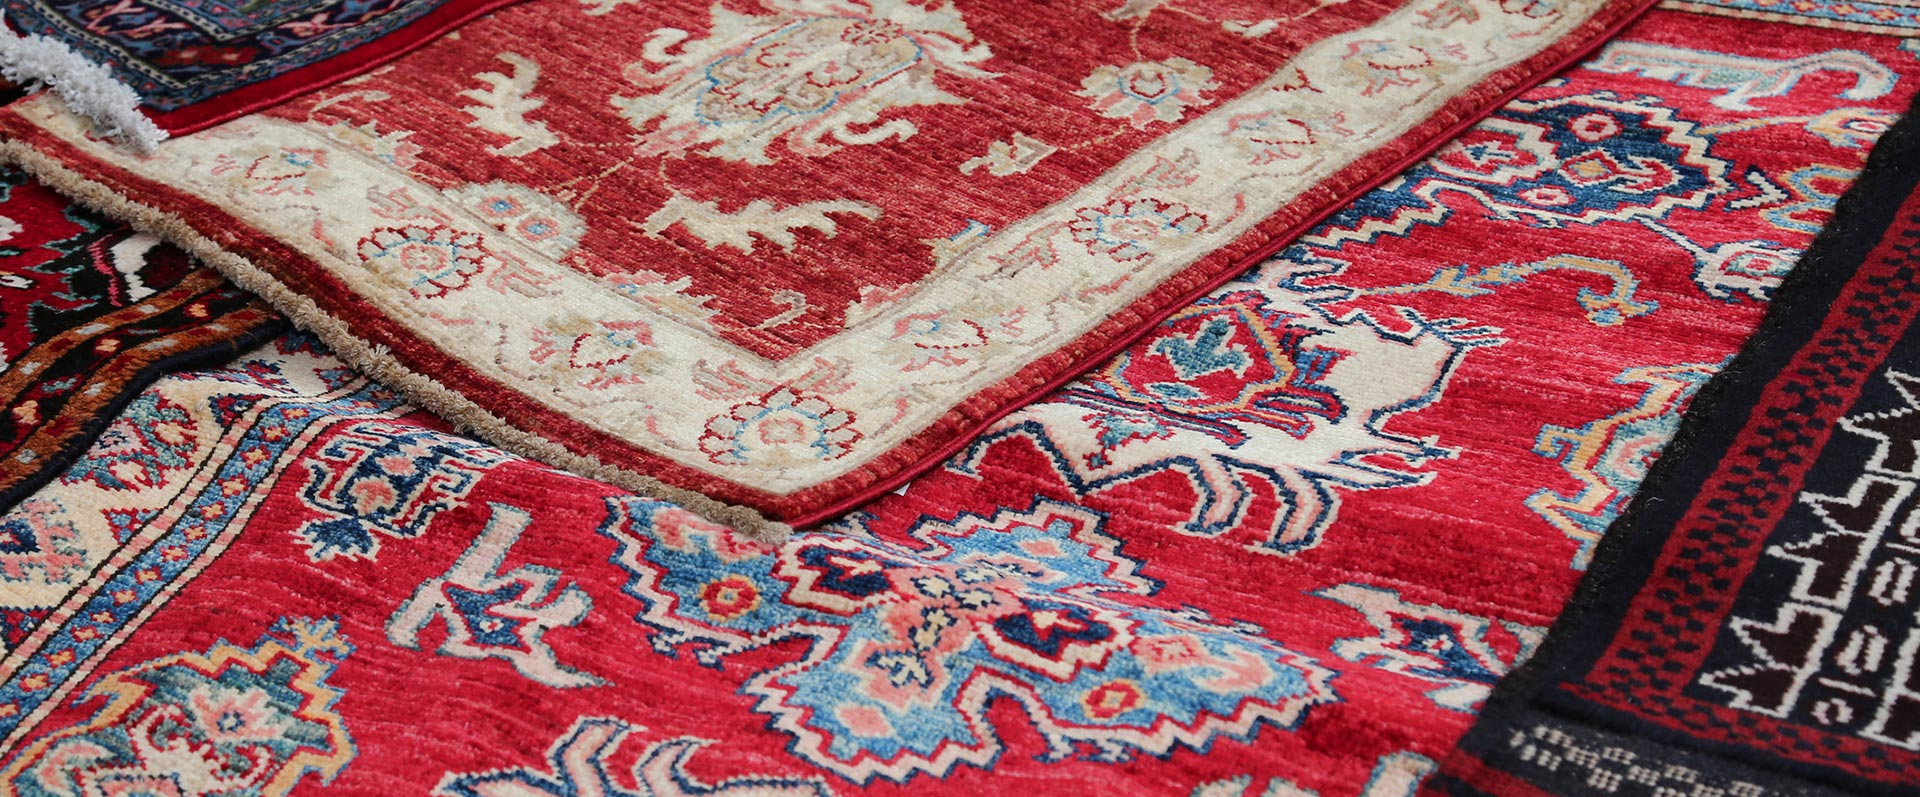 Rug Cleaning Plant Proodian Cleaners Inc